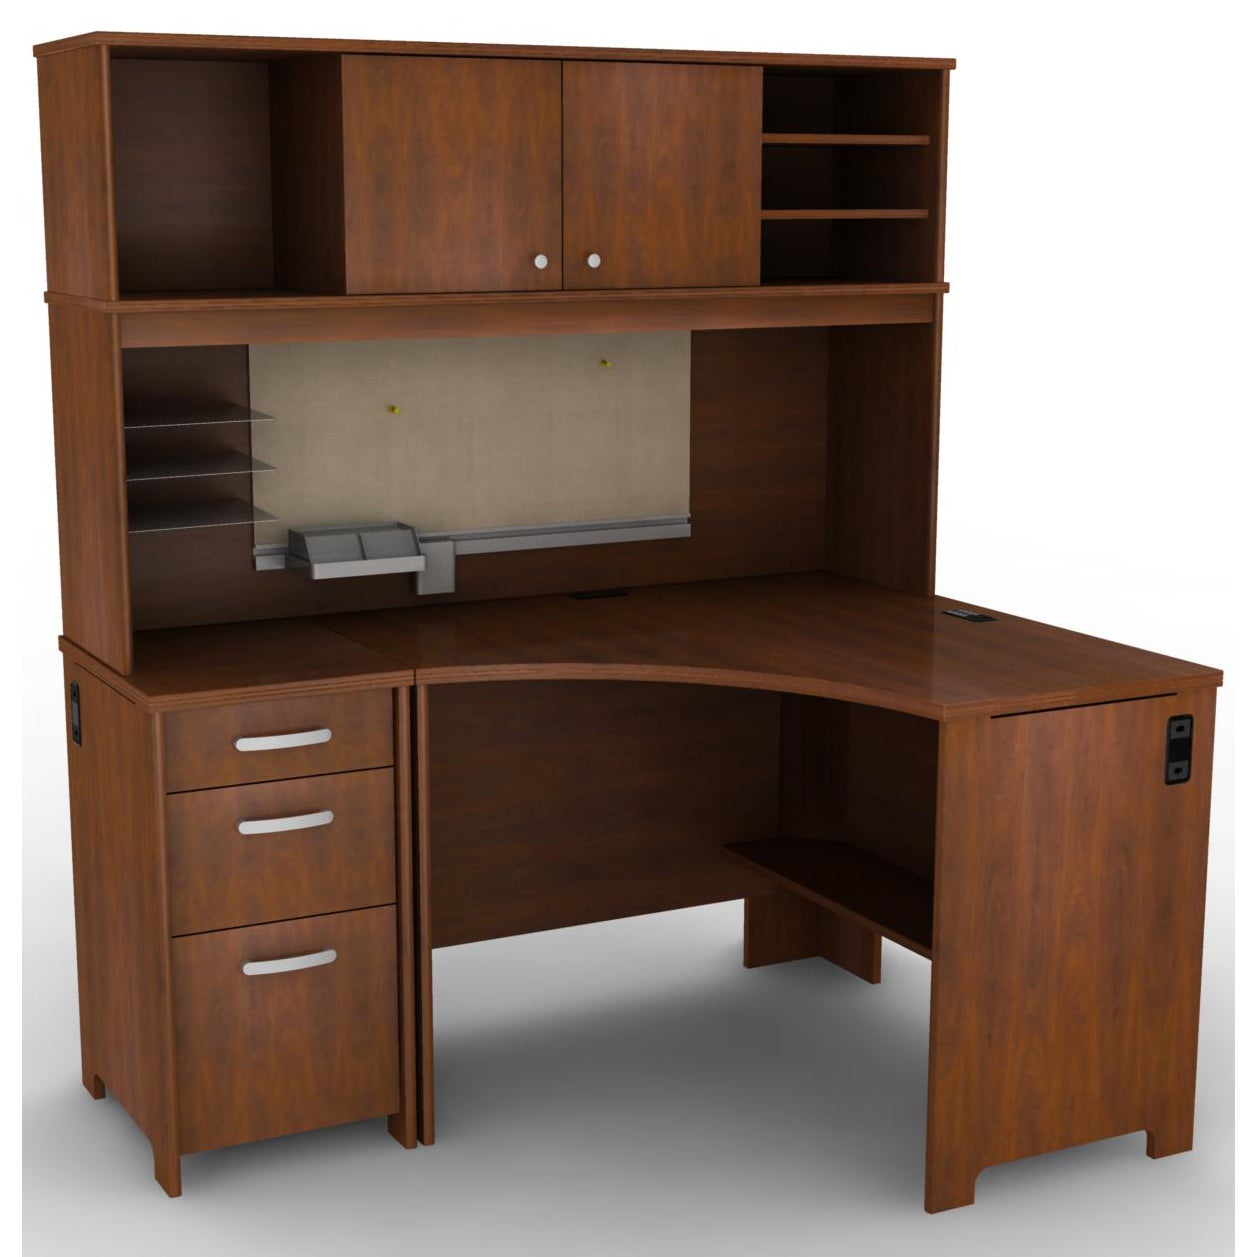 Bush Furniture Envoy Collection Corner Desk Suite Overstock Shopping The Best Prices On